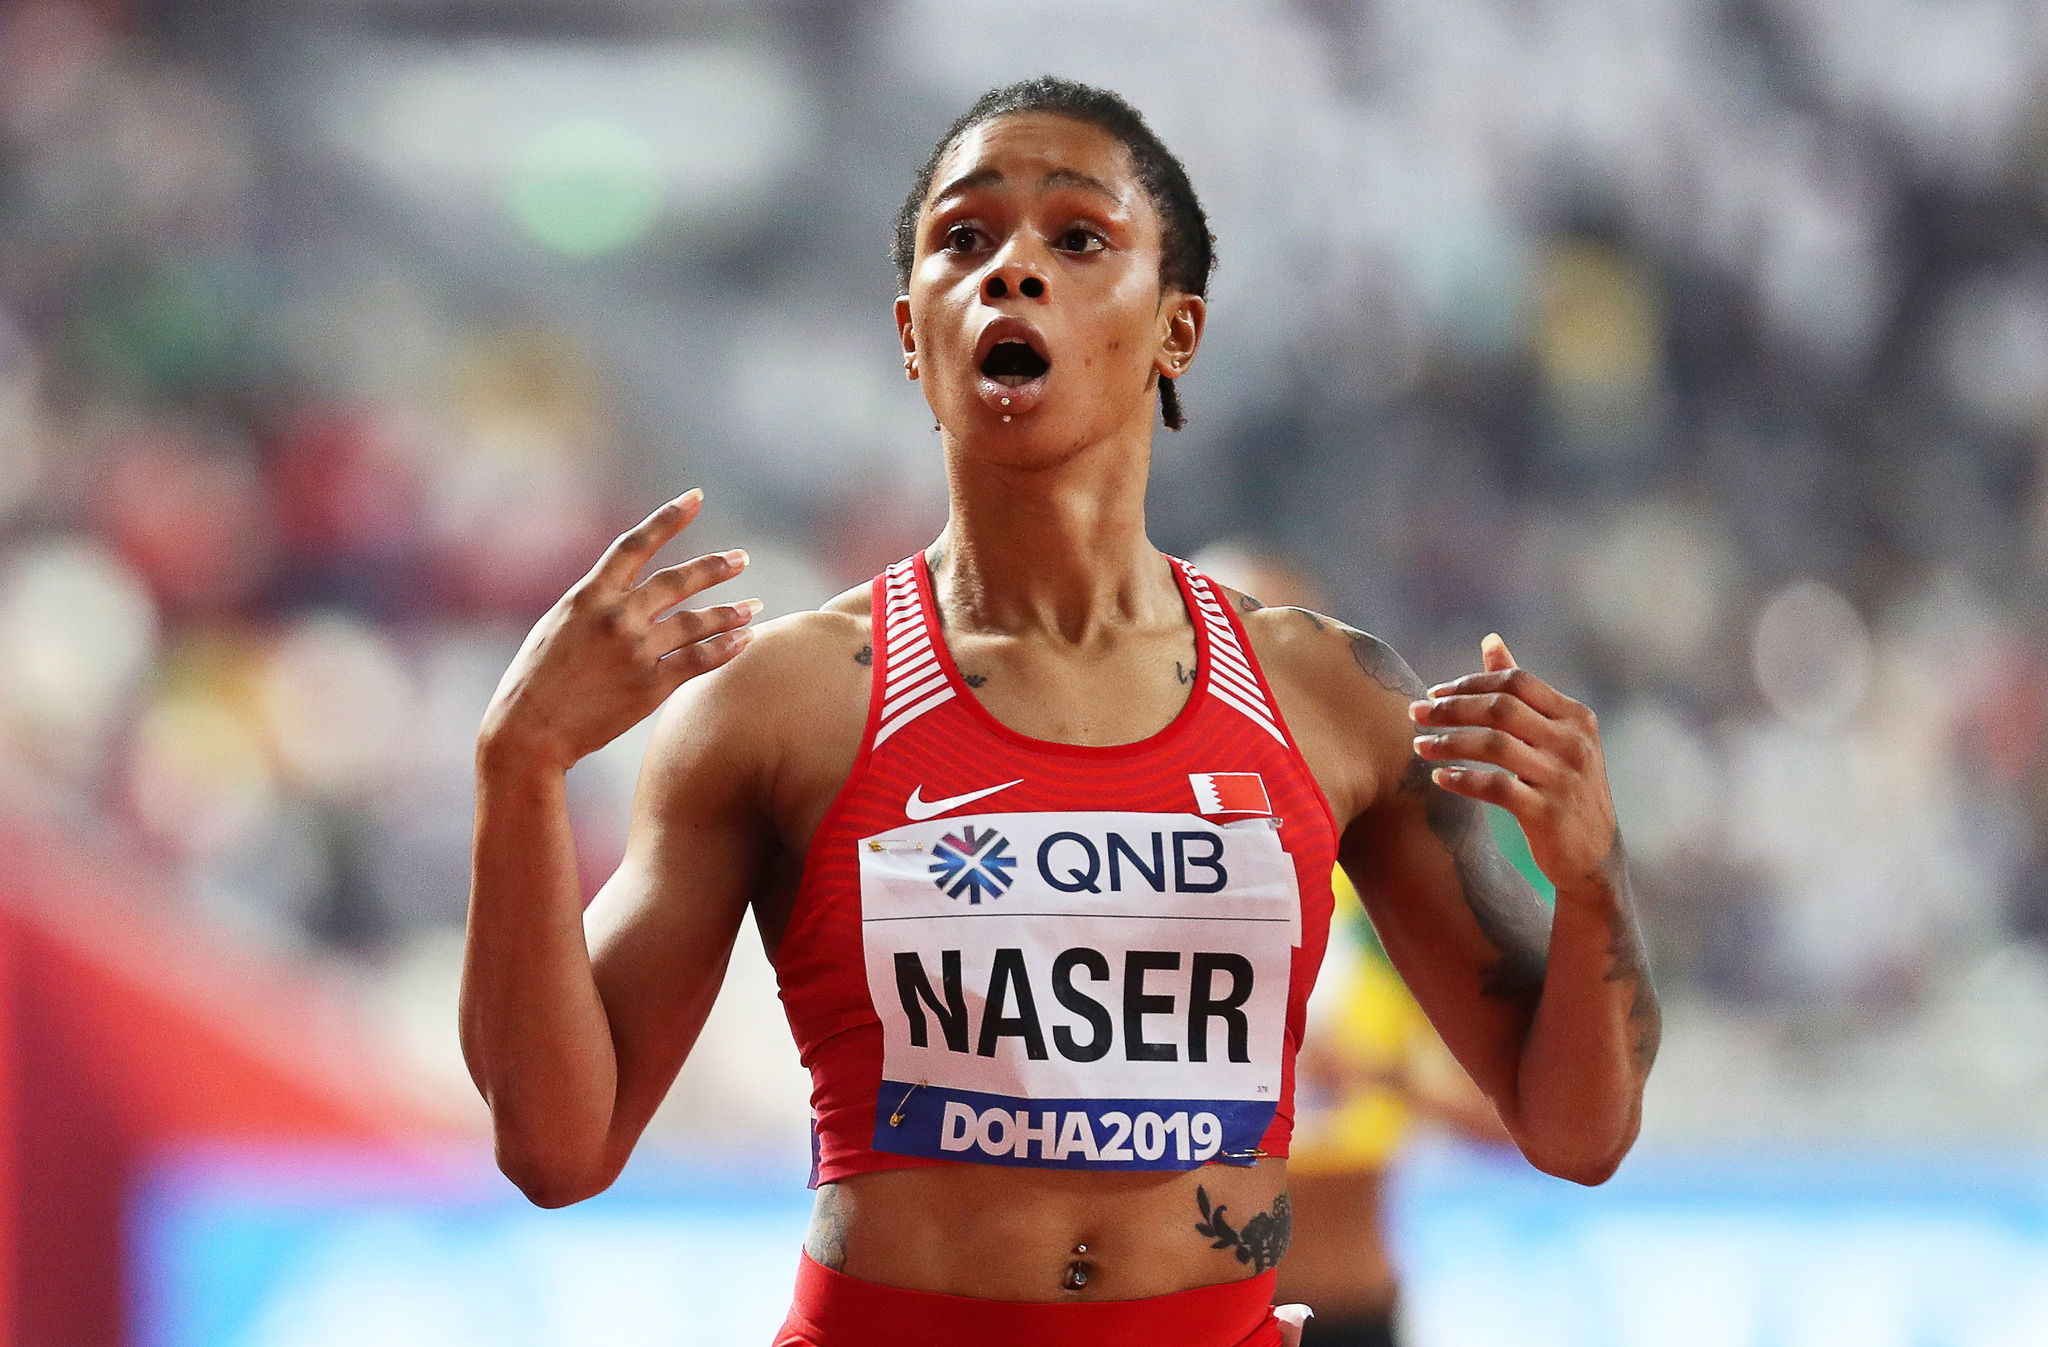 Doha (Qatar).- (FILE) - Salwa Eid lt;HIT gt;Naser lt;/HIT gt; of Bahrain reacts after crossing the finish line to win the women's 400m final at the IAAF World Athletics Championships 2019 at the Khalifa Stadium in Doha, Qatar, 03 October 2019 (re-issued on 05 June 2020). Salwa Eid lt;HIT gt;Naser lt;/HIT gt; has been provisionally banned for failing to make herself available for anti-doping tests, the Athletics Integrity Unit (AIU) confirmed on 05 June 2020. The 400m world champion could face a ban of up to two years for the whereabouts violation. (Mundial de Atletismo, 400 metros, Bahrein, Catar) EPA/ *** Local Caption *** 55520523